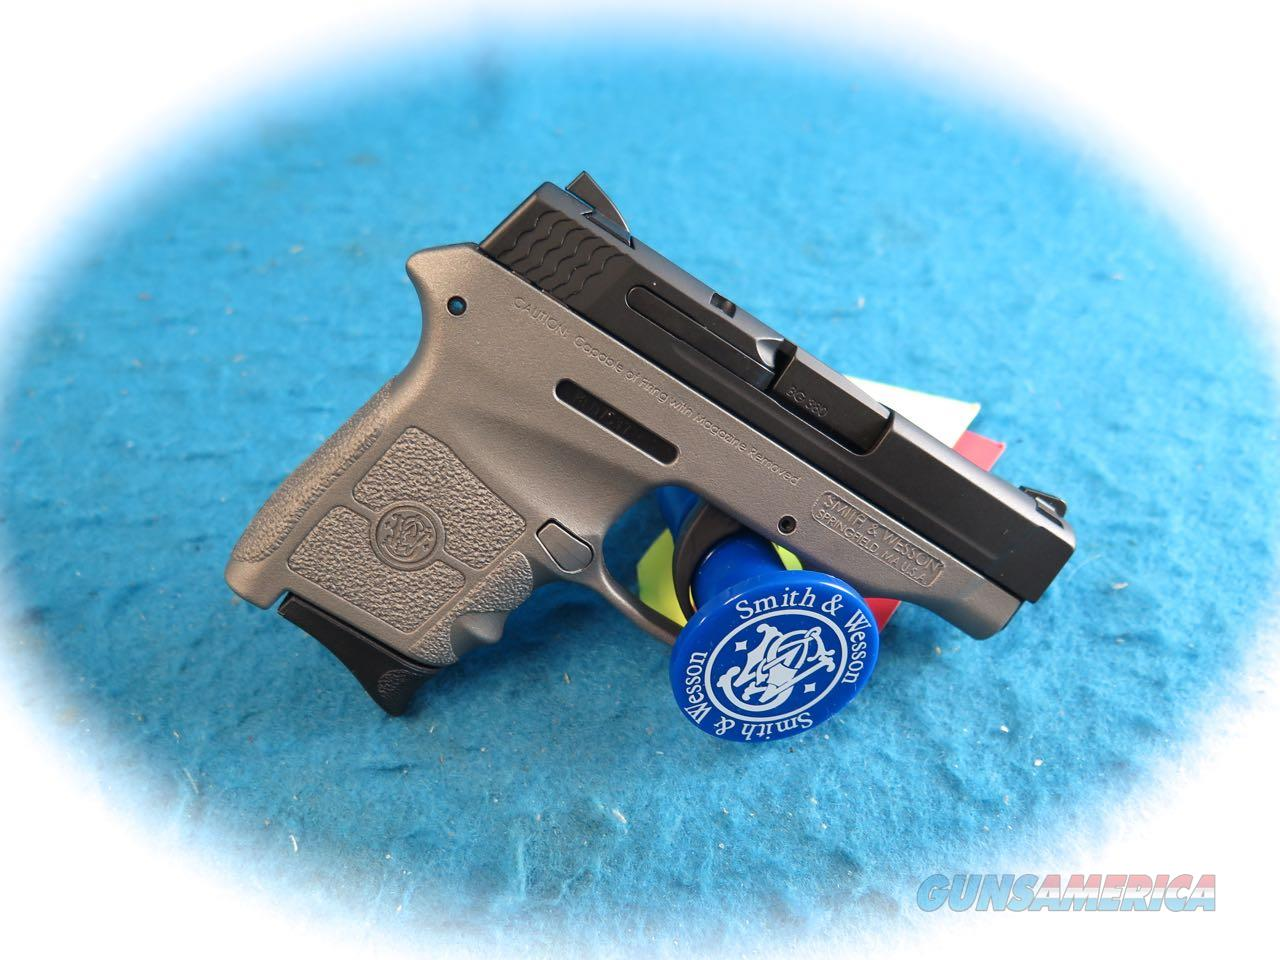 SMITH & WESSON M&P BODYGUARD STAINLESS H152 CERAKOTE SKU 12397  **New**   Guns > Pistols > Smith & Wesson Pistols - Autos > Polymer Frame